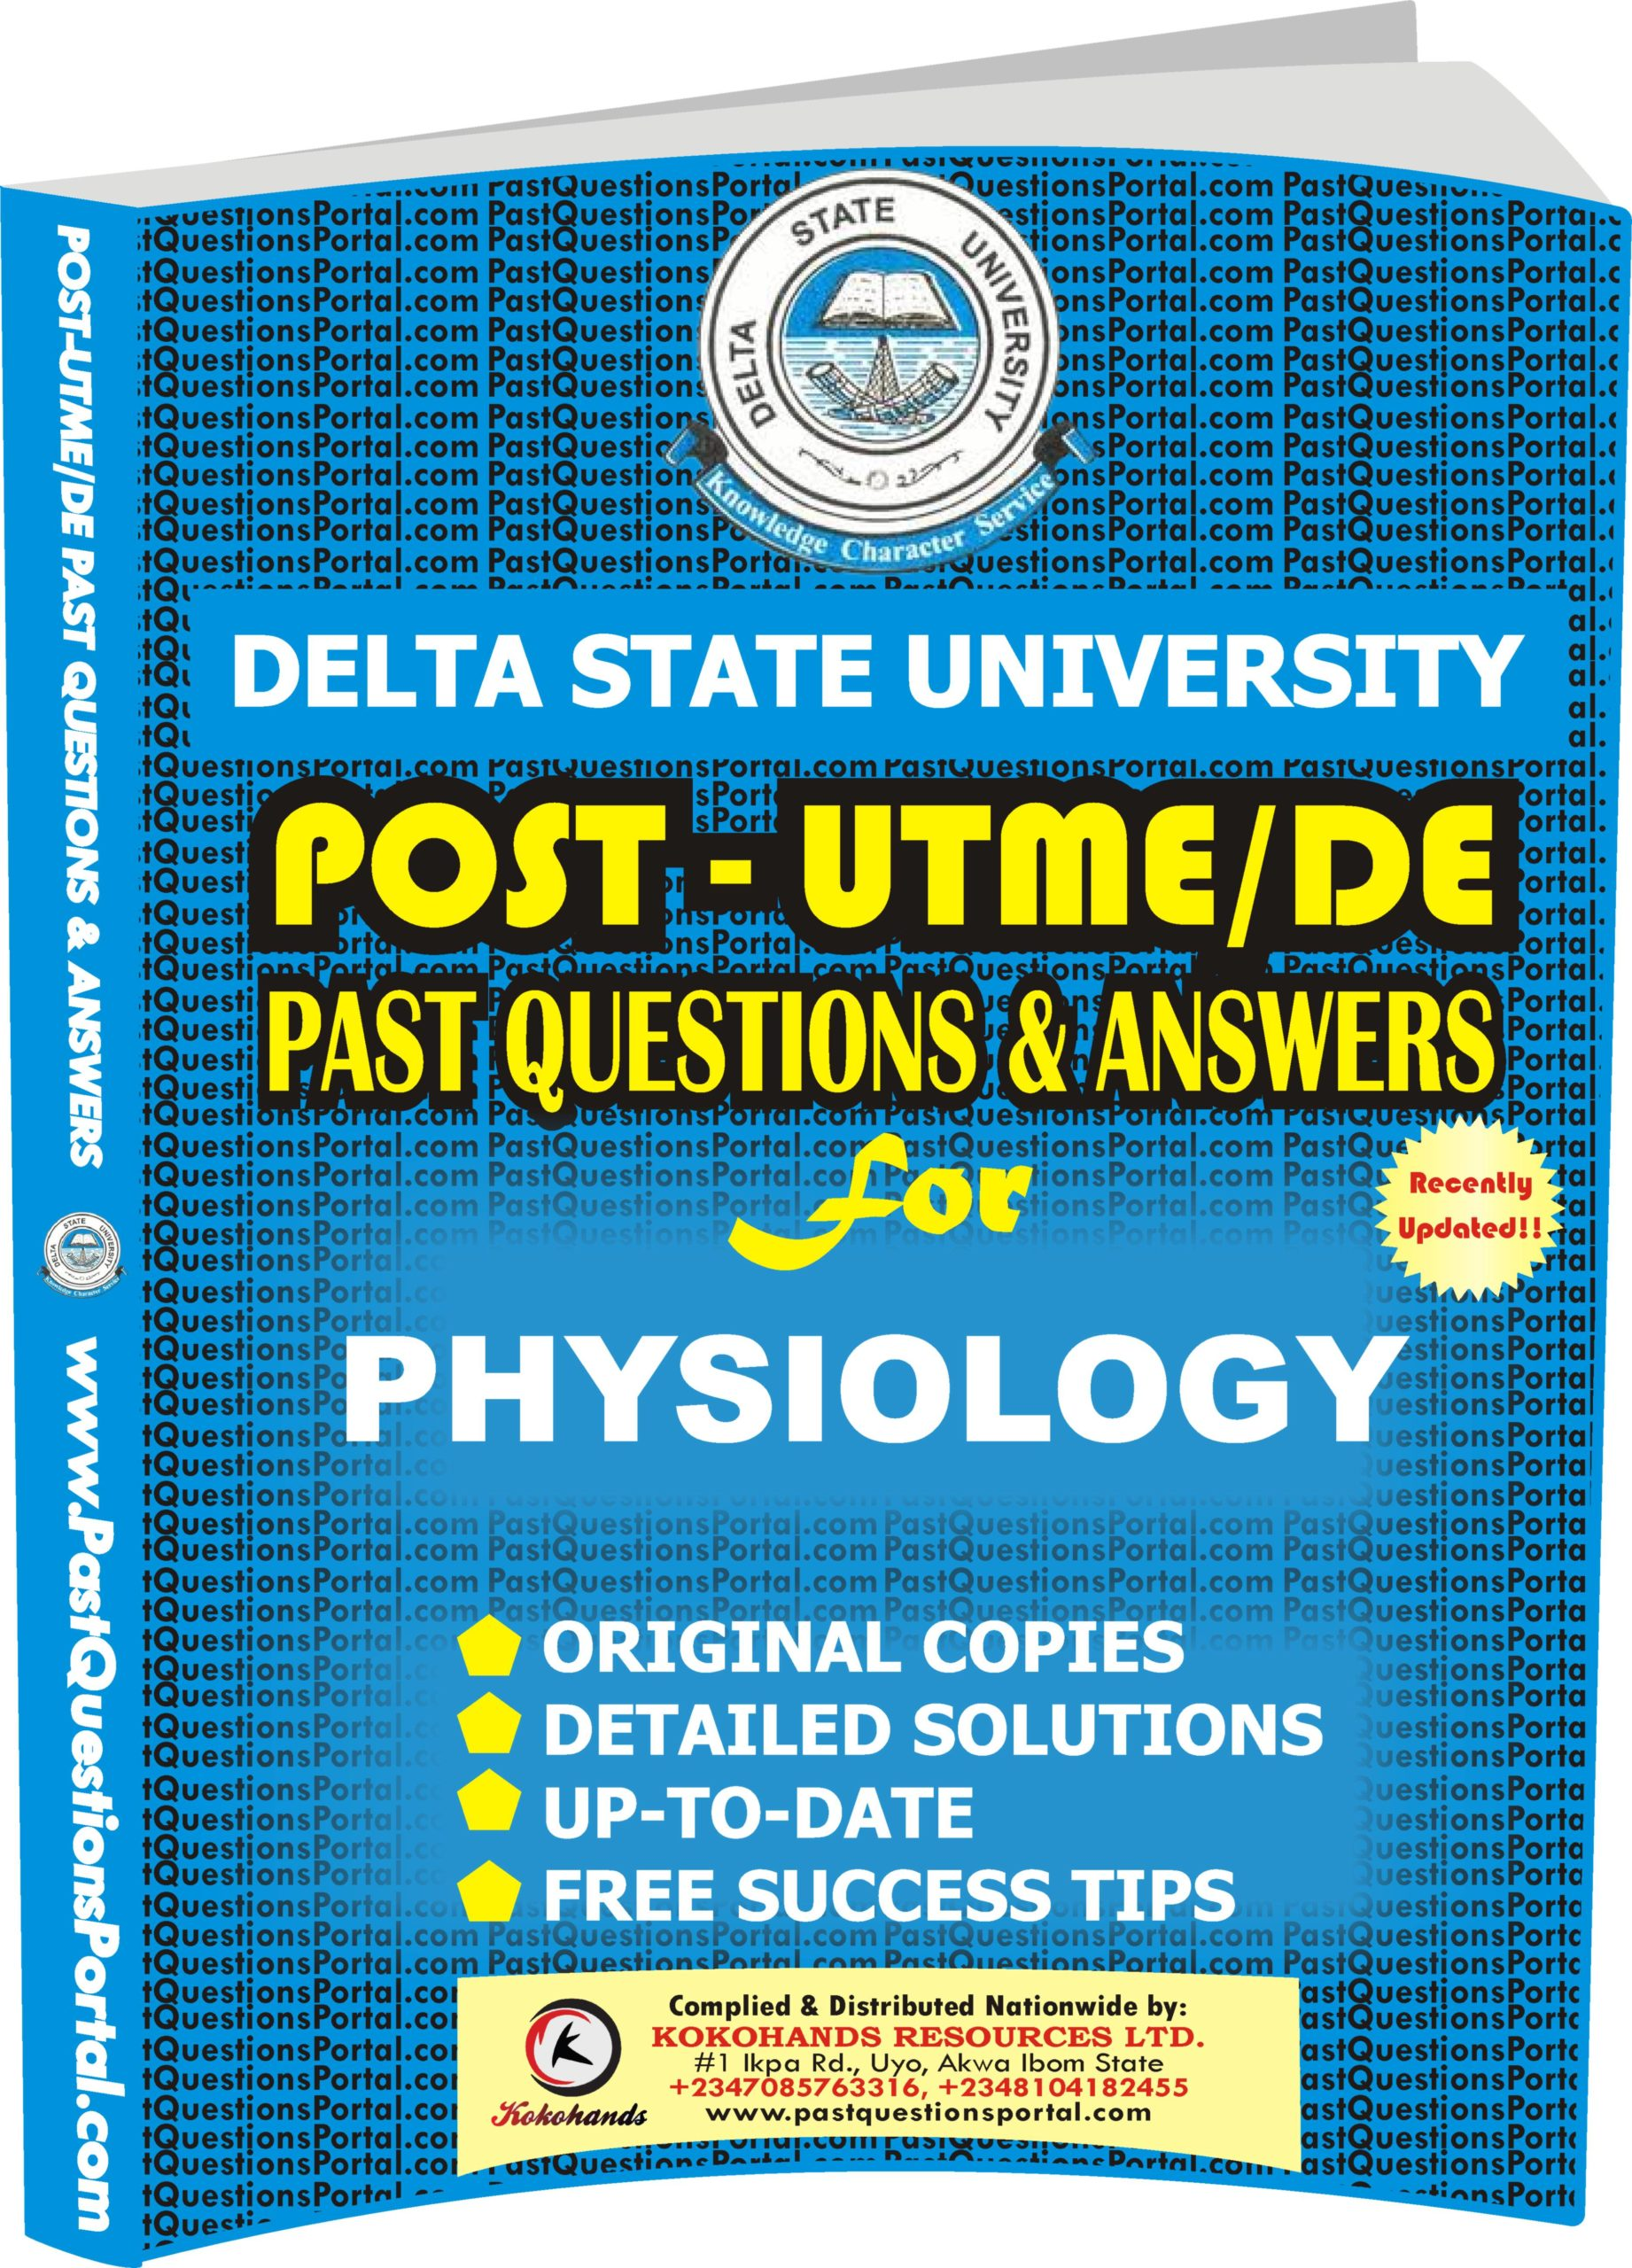 DELSU Post UTME Past Questions for PHYSIOLOGY